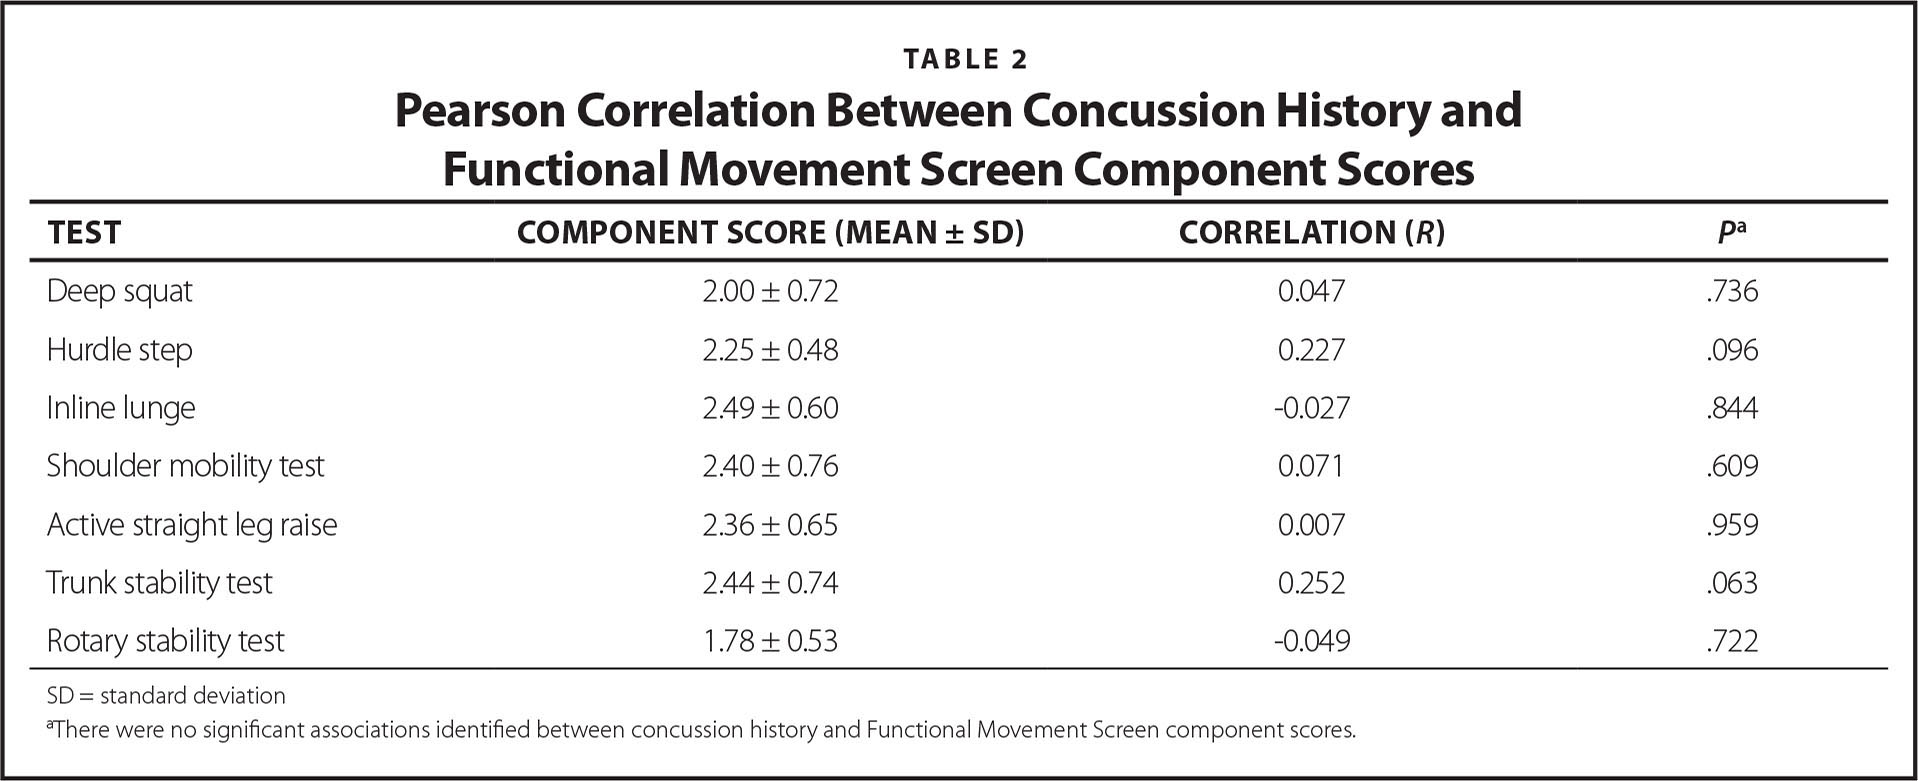 Pearson Correlation Between Concussion History and Functional Movement Screen Component Scores